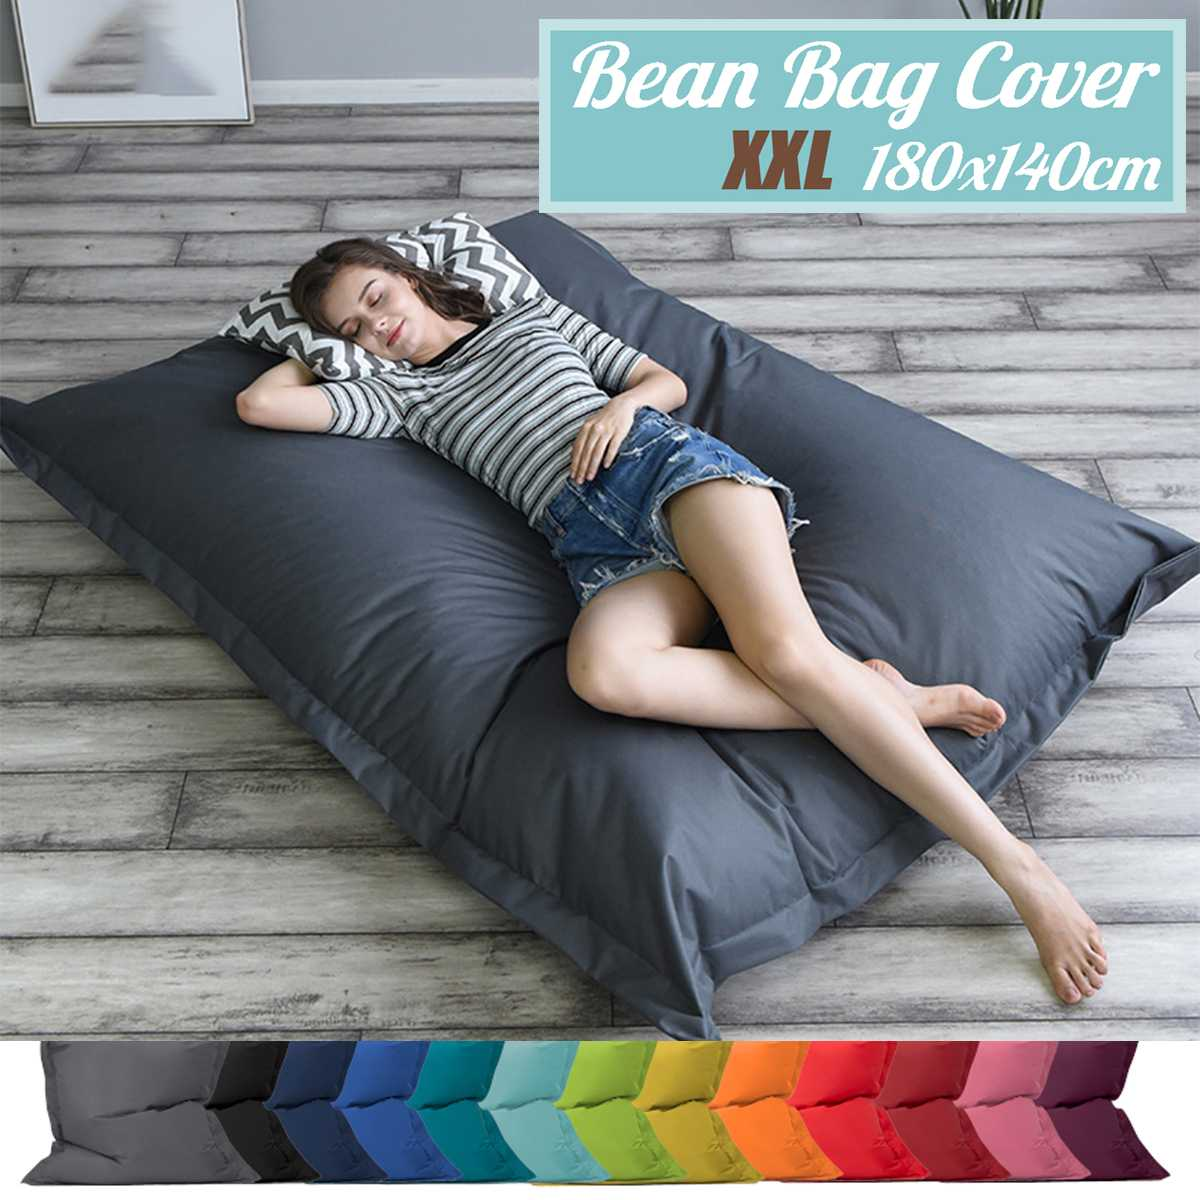 Square BeanBag Sofa Cover Chairs Without Filler Waterproof Lounger Seat Bean Bag Puff Asiento Couch Tatami Living Room Furniture